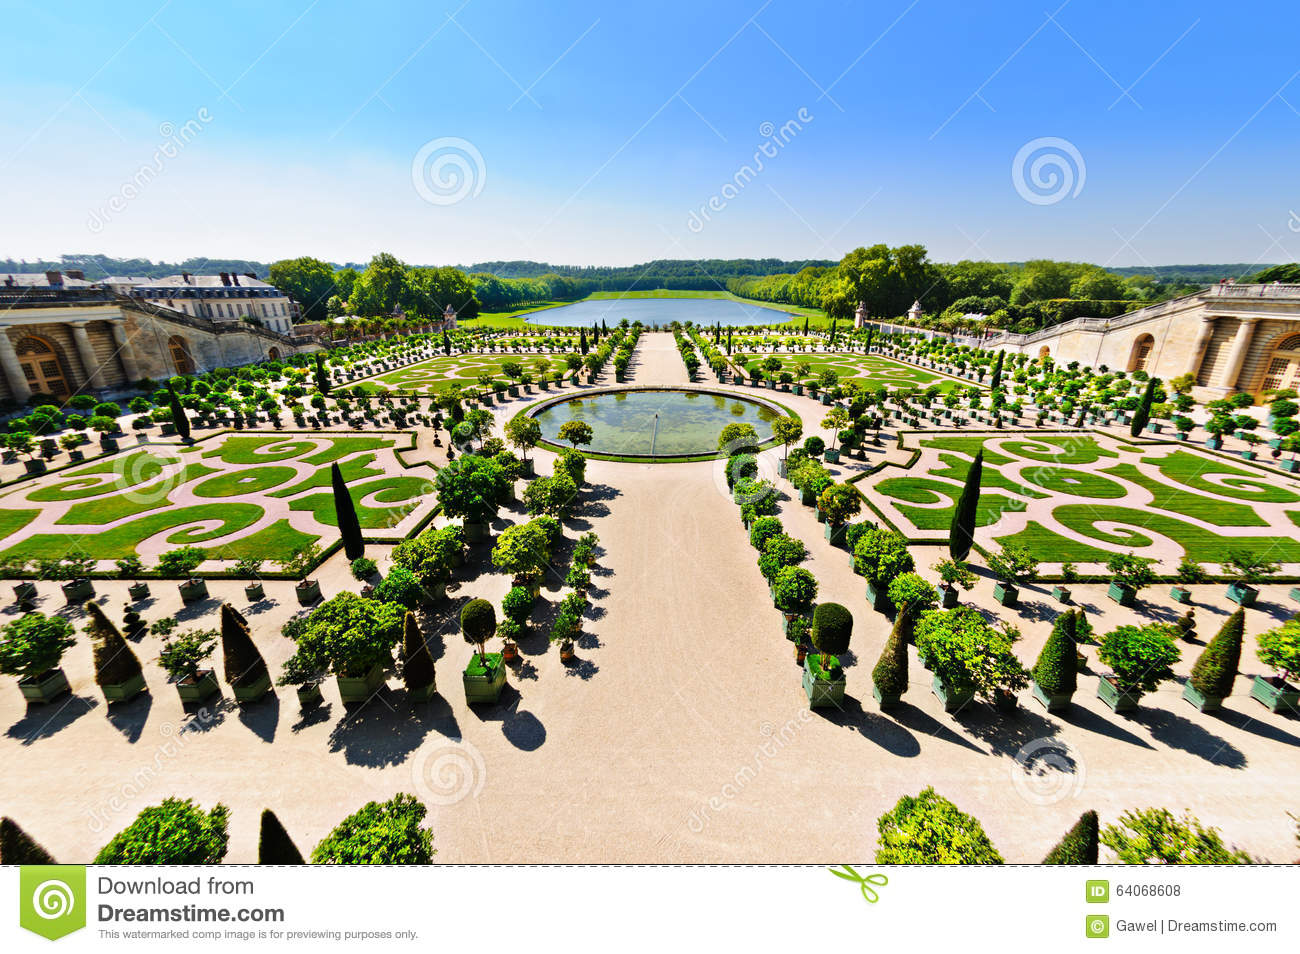 Le jardin de versailles paris france photo stock image for Les jardins en france